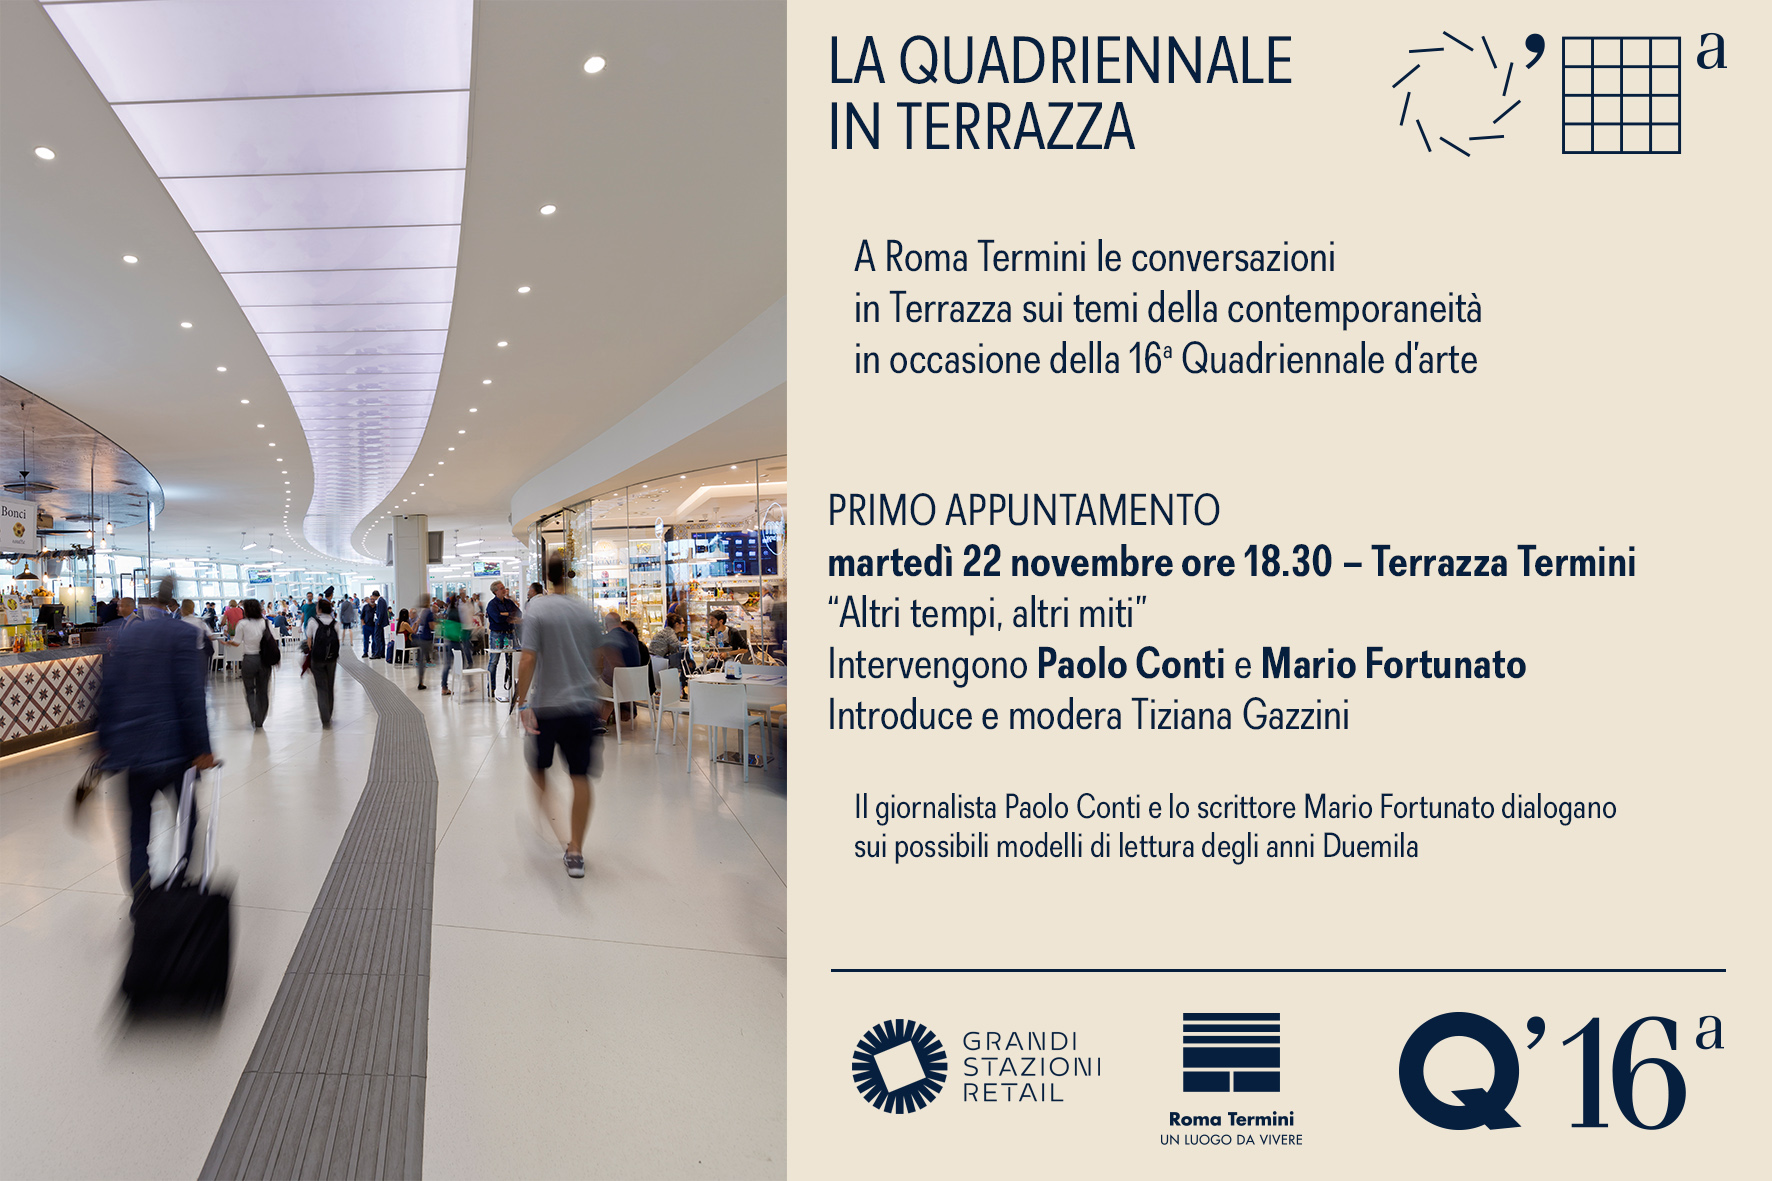 At Terrazza Termini to speak about art and contemporary issues ...